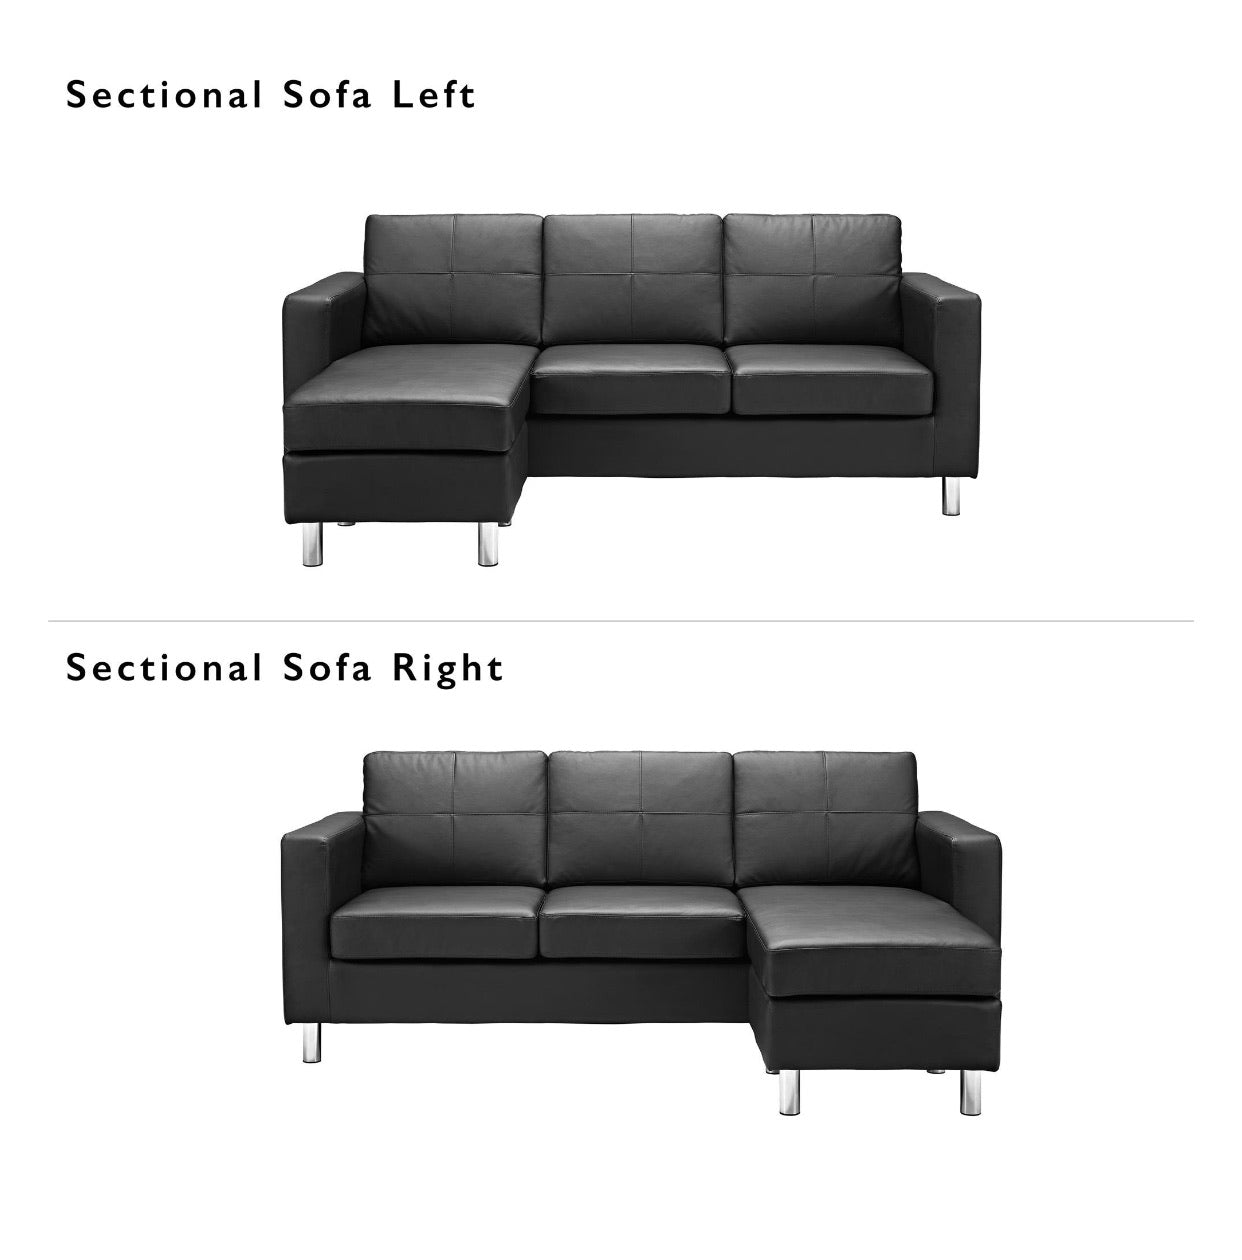 Sectional Sofa Couch Leather Retail Price $600